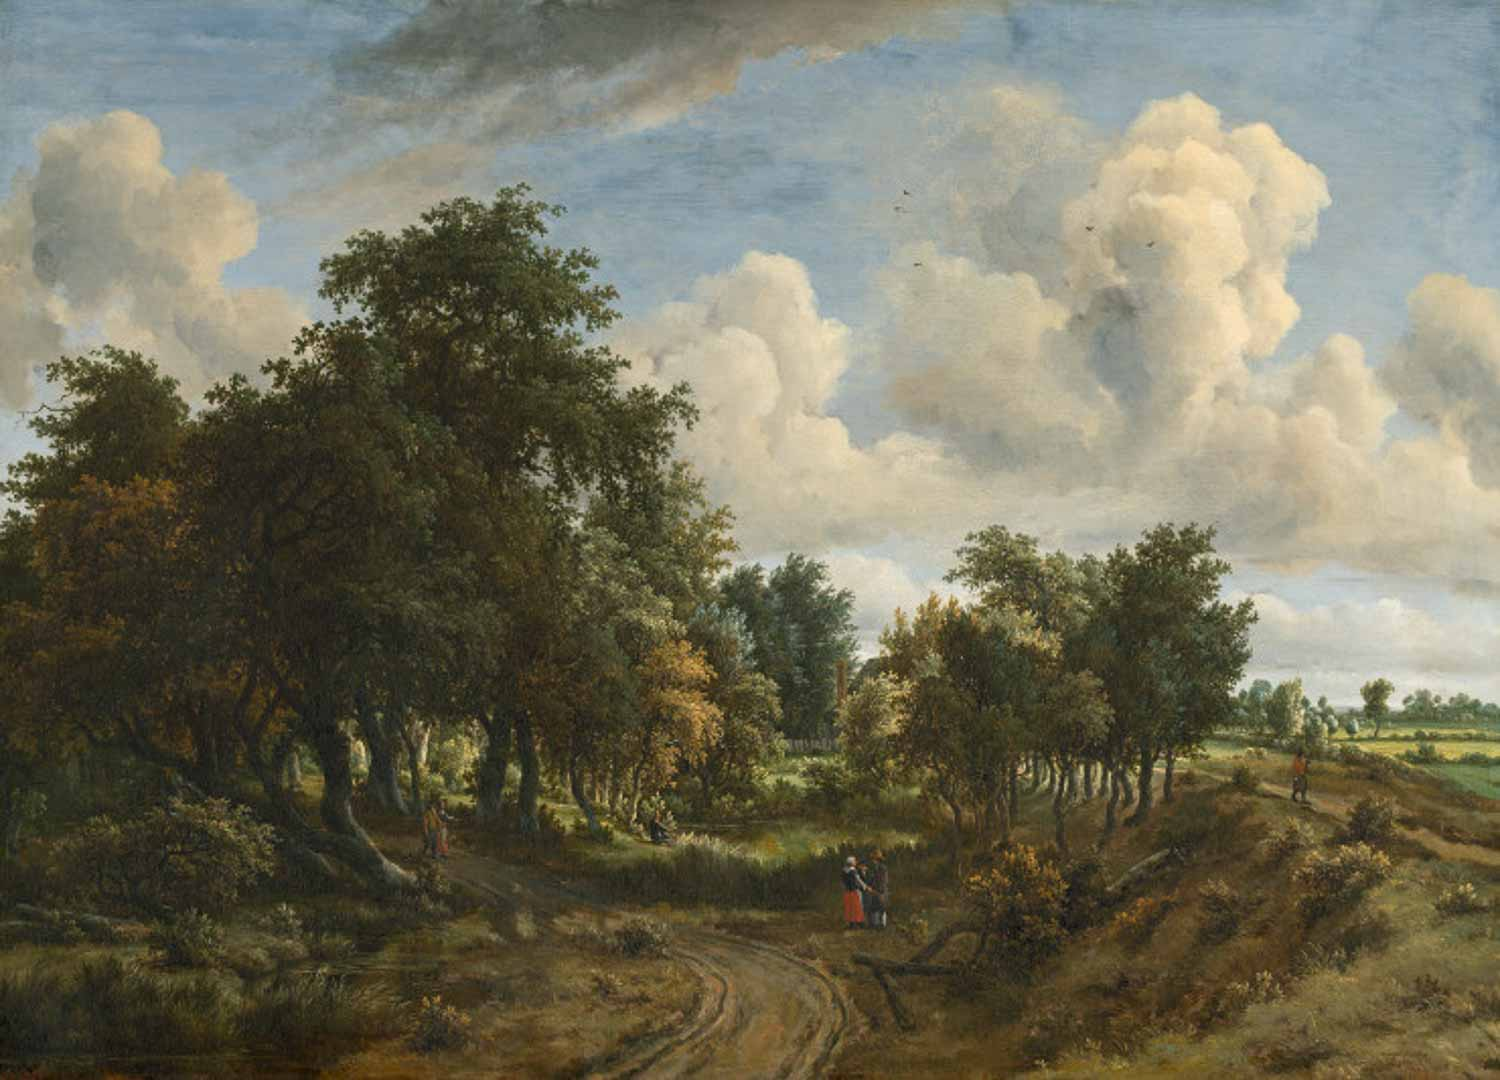 Meindert Hobbema, wooded landscape